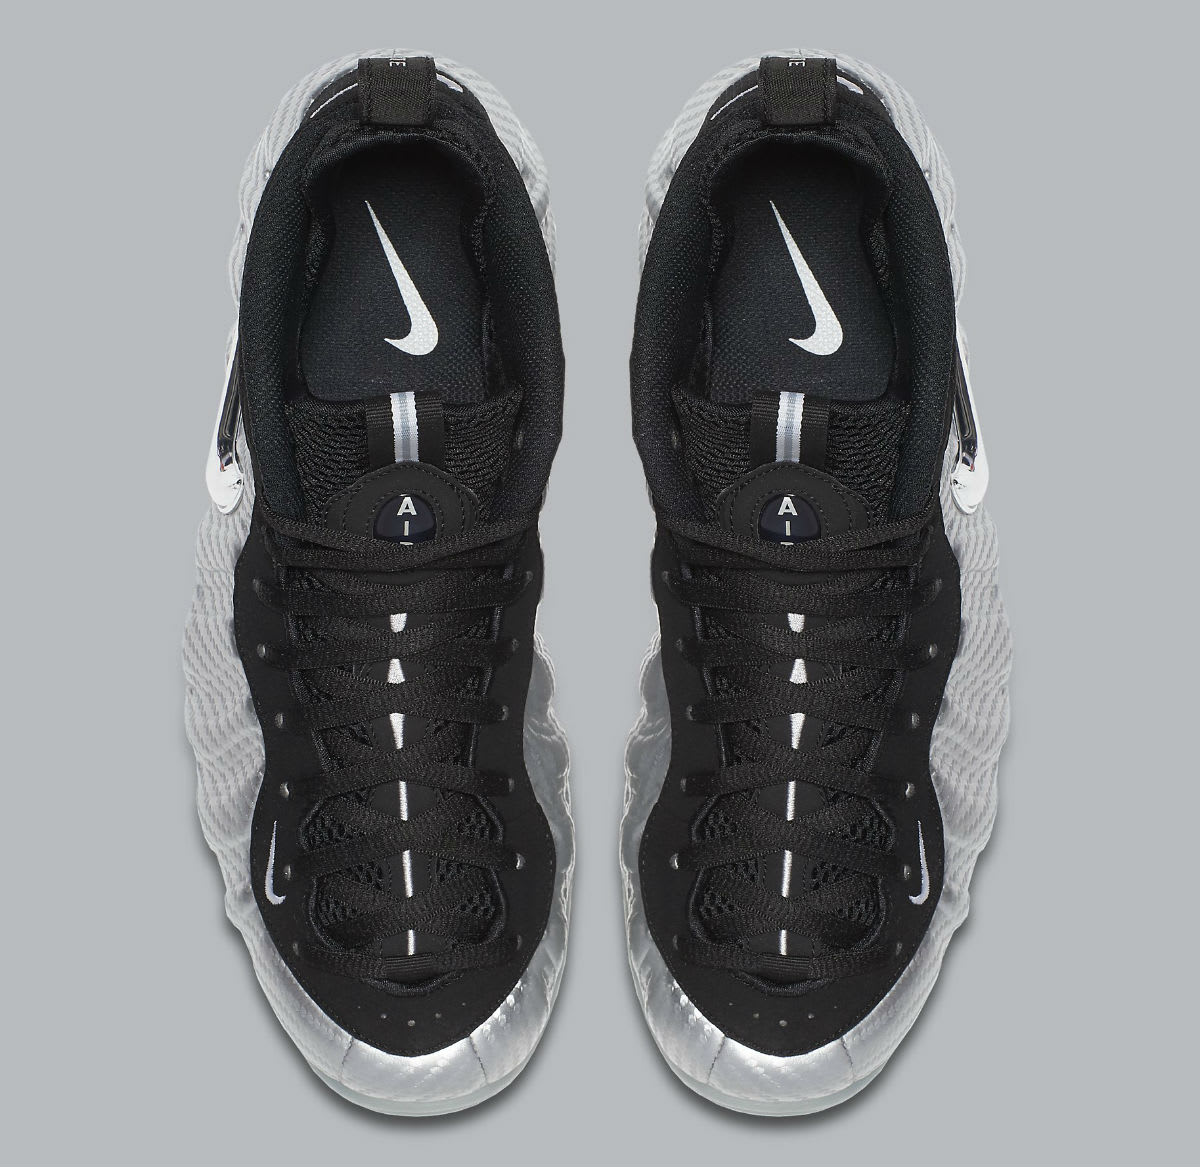 Nike Air Foamposite Pro Silver Surfer Release Date Top 616750-004